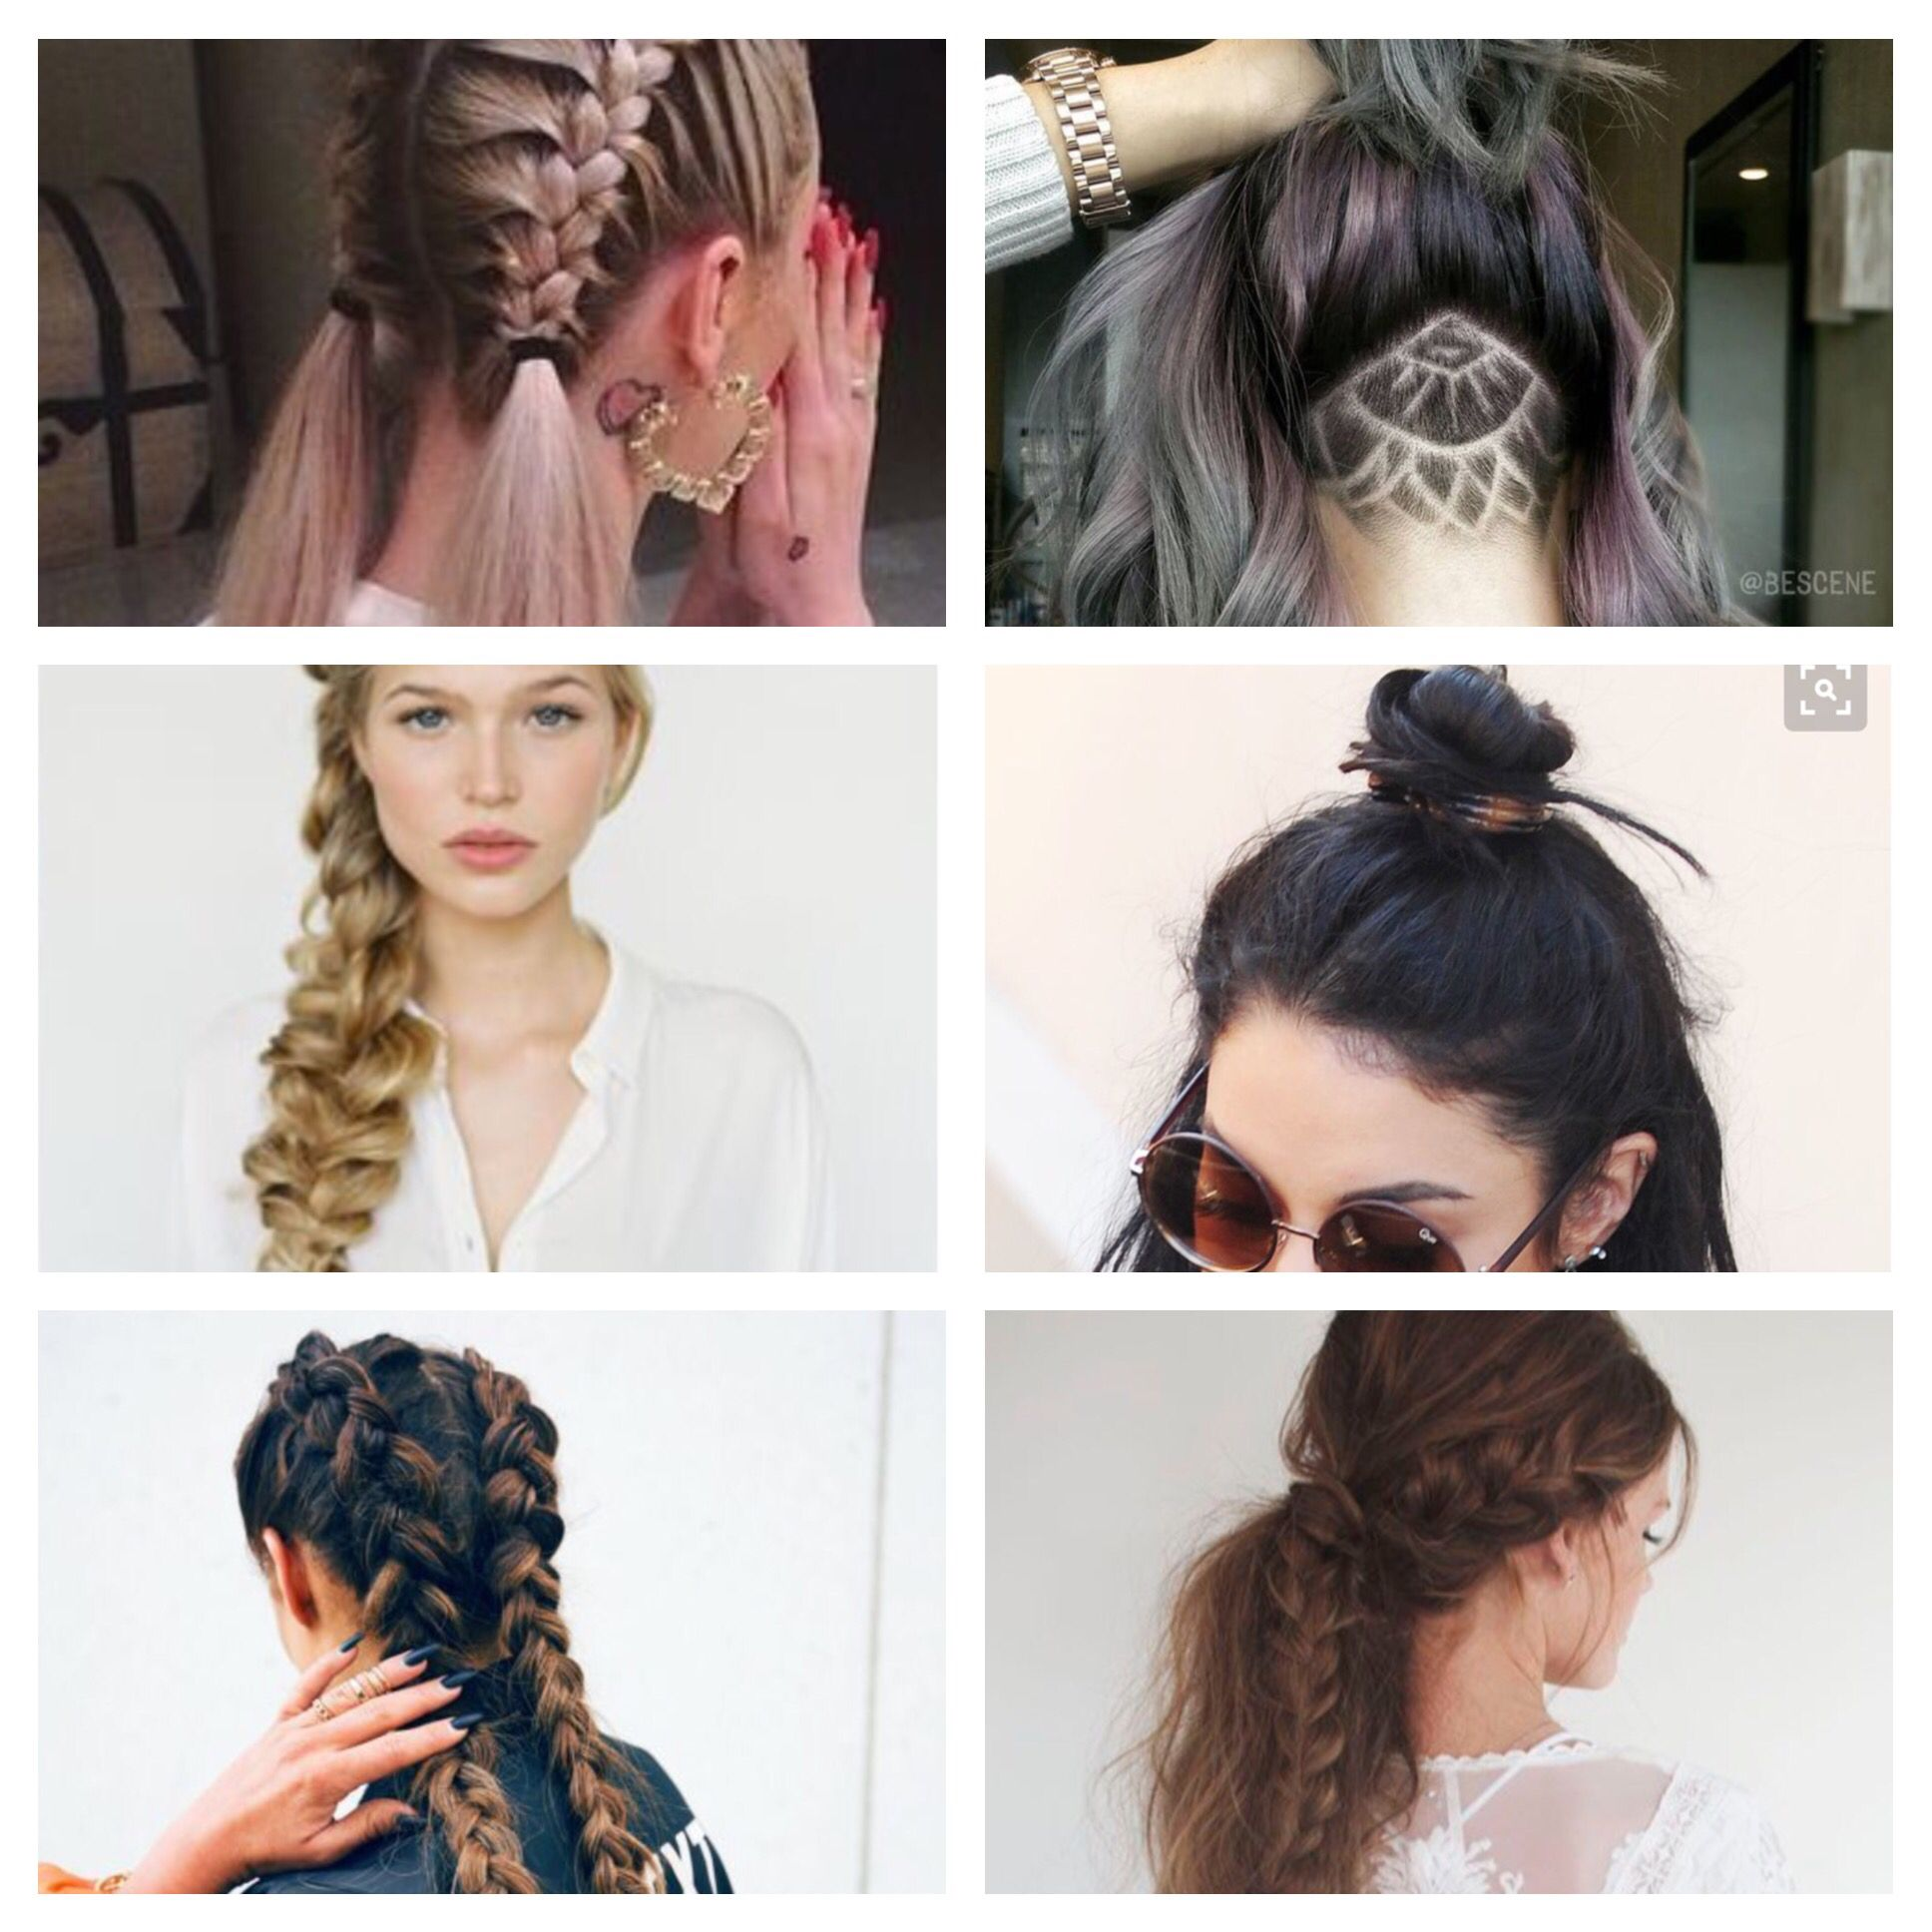 Try On Hairstyles Entrancing 10 Hairstyles To Try This Summer Checkout More Images On The Blog